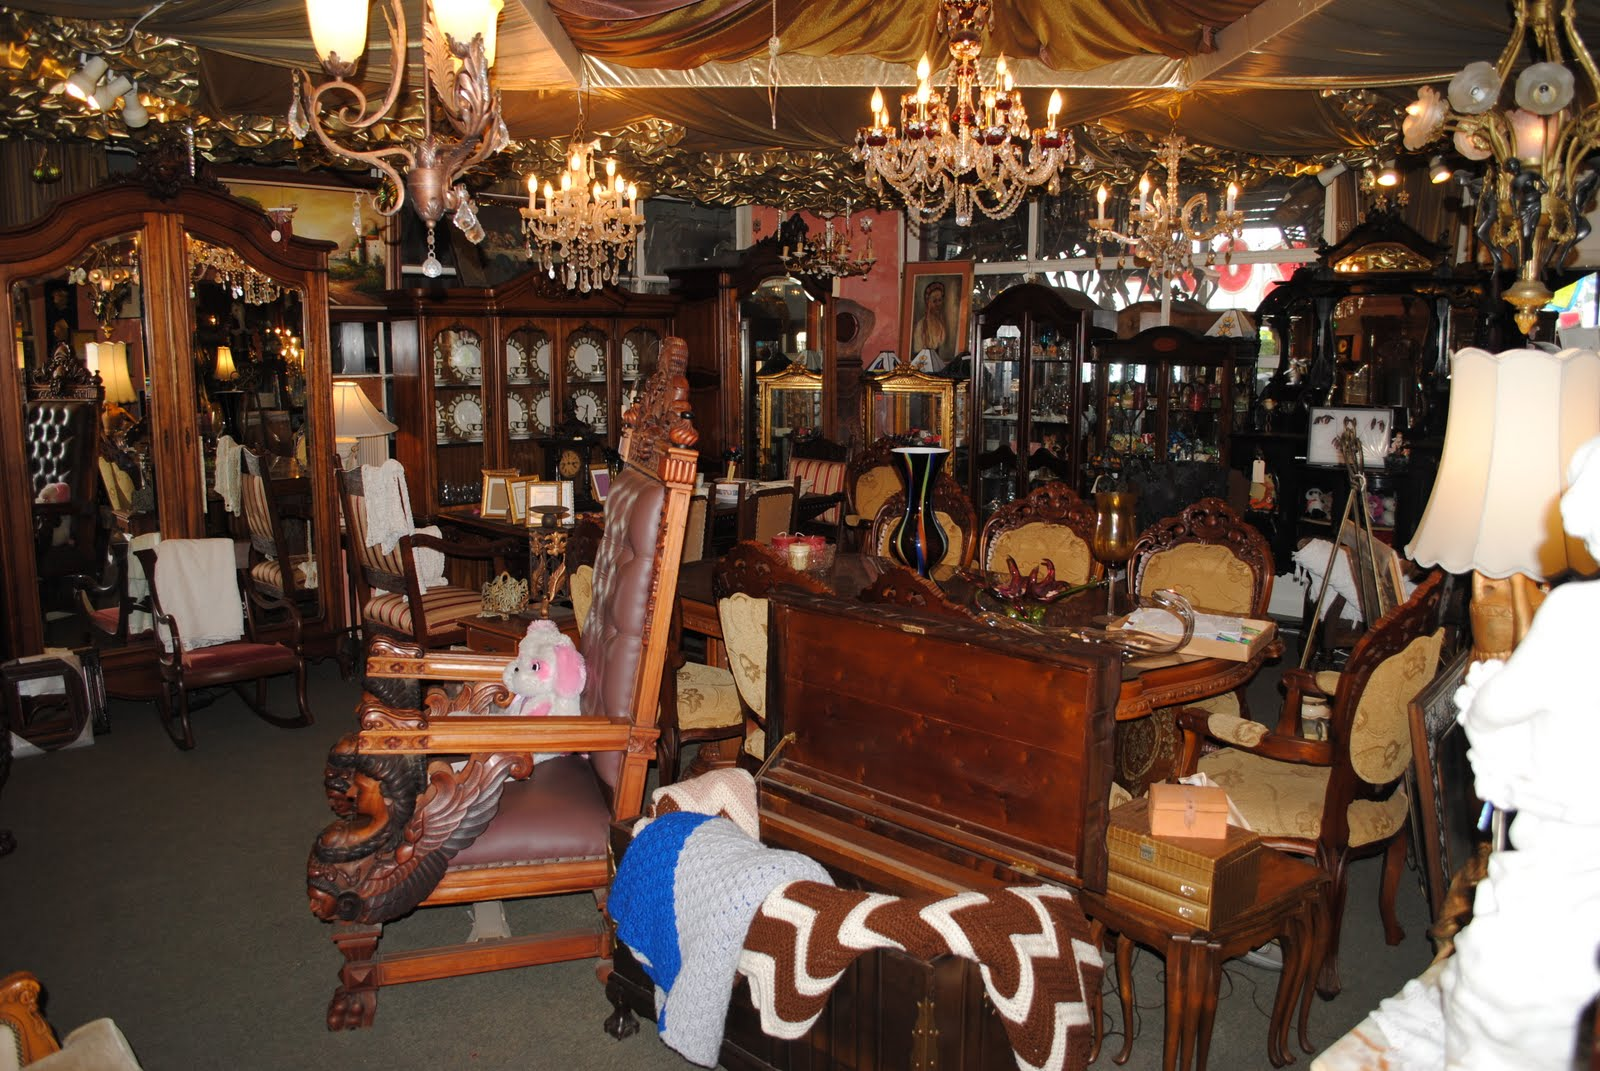 This European Antique store and flower shop will be featured on the hit  show Antique Road Show this month. Antique Roadshow comes to Long Beach   Beyond Tiffany   European